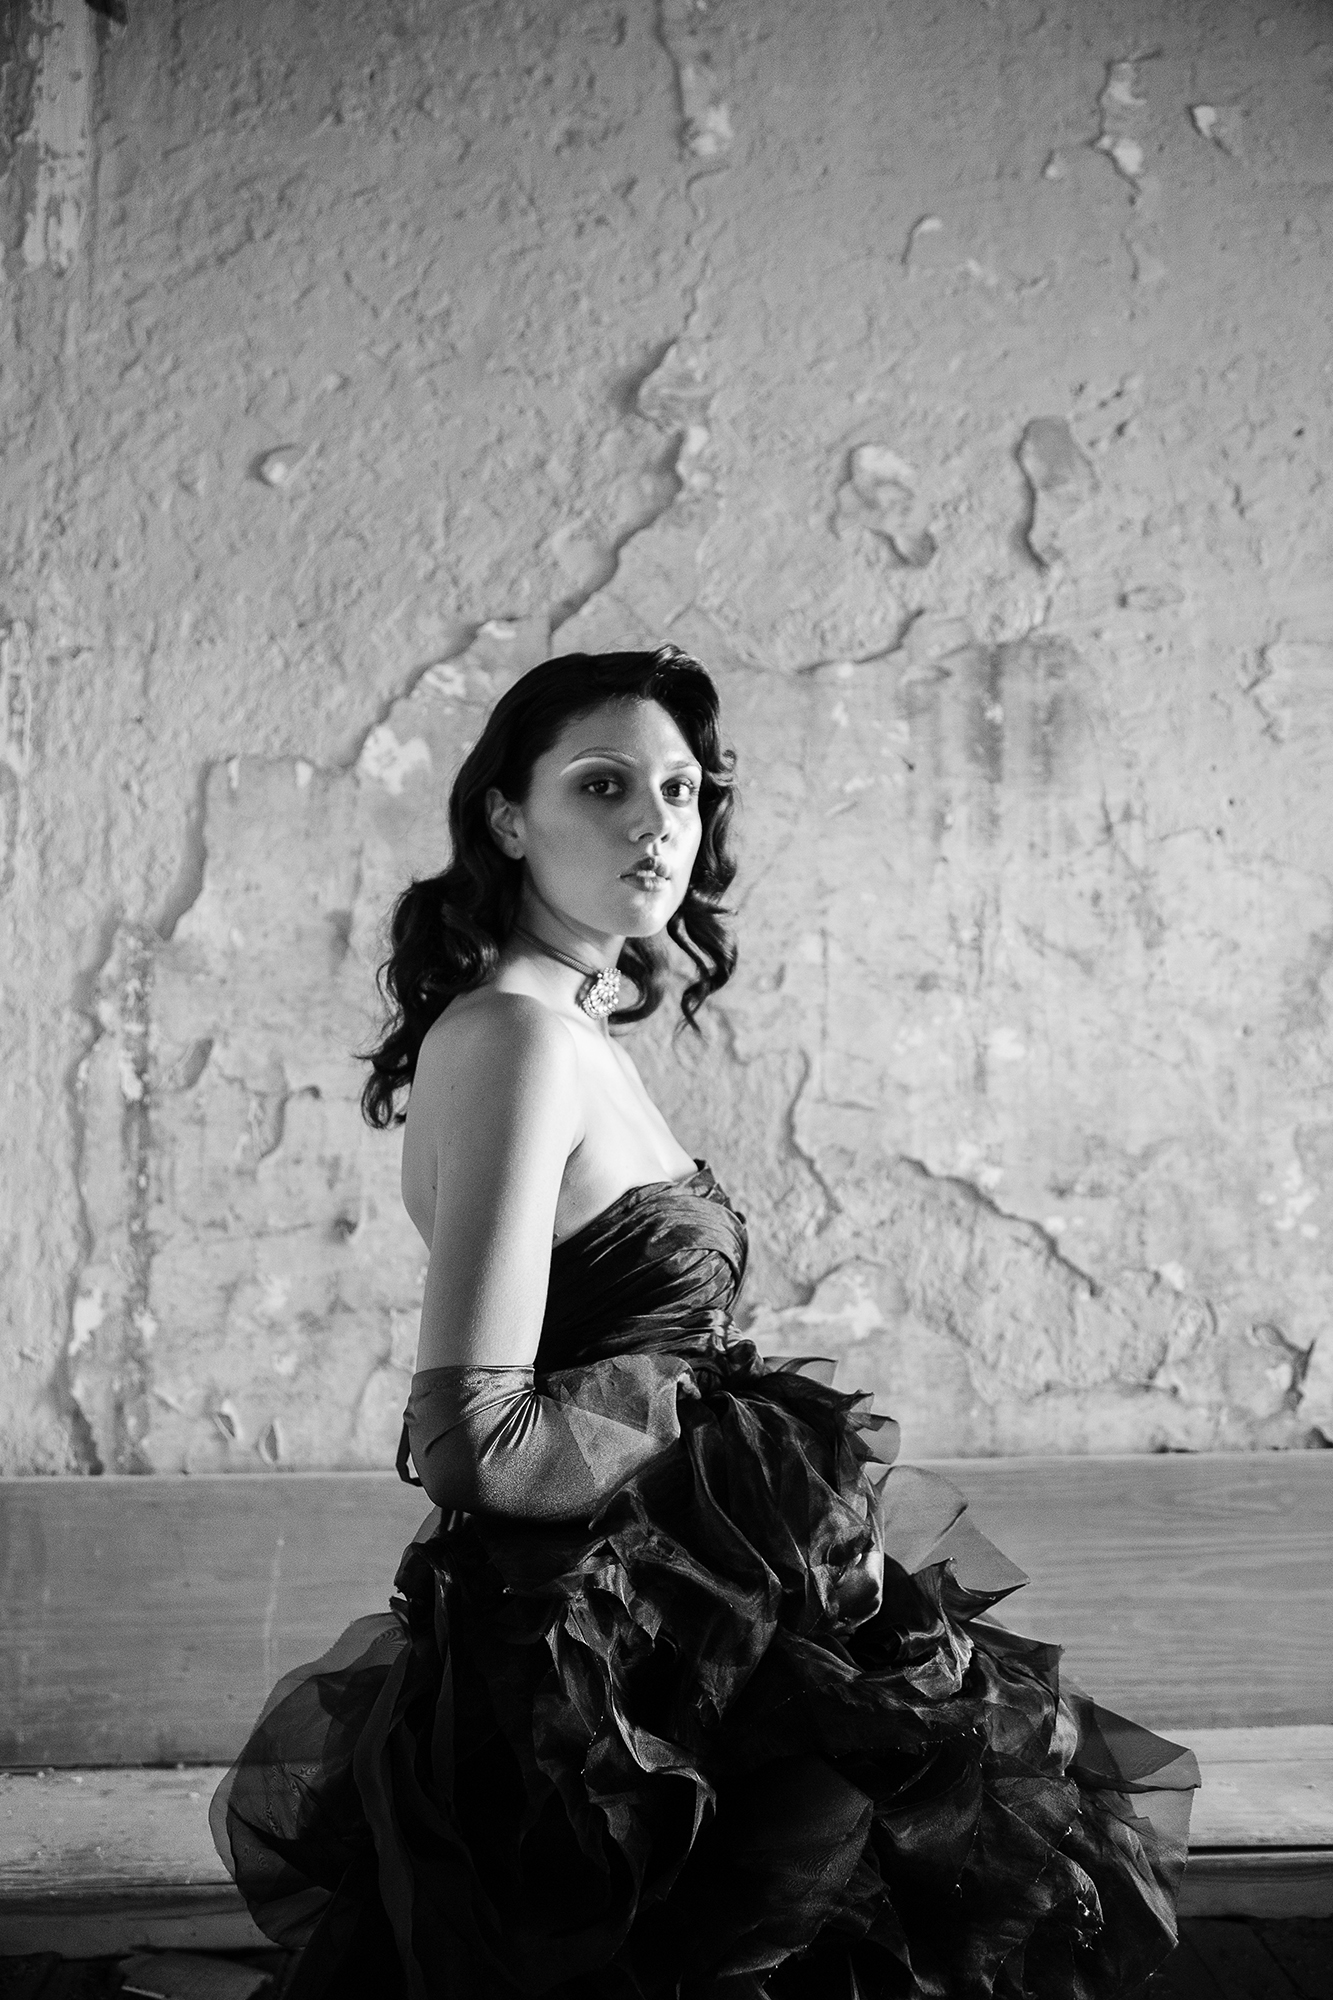 Black and white Photo of woman in a big poofy dress fashion gothic dark photography model body facing way from camera head turned